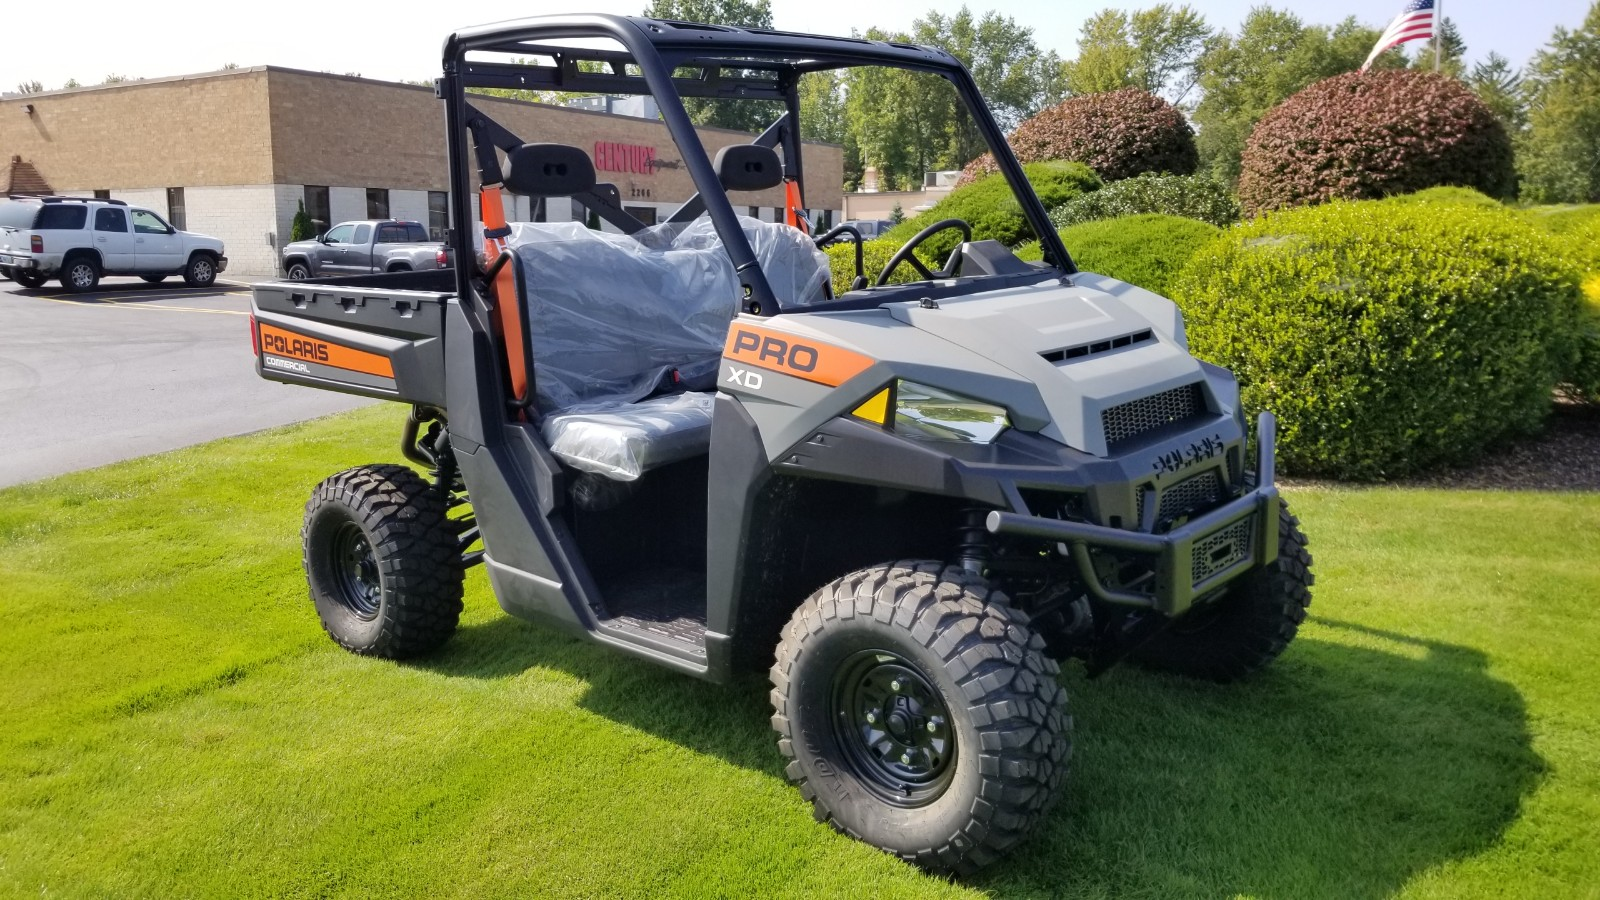 Featured Image for 2020 Polaris Pro XD AWD 2 Passenger Gas